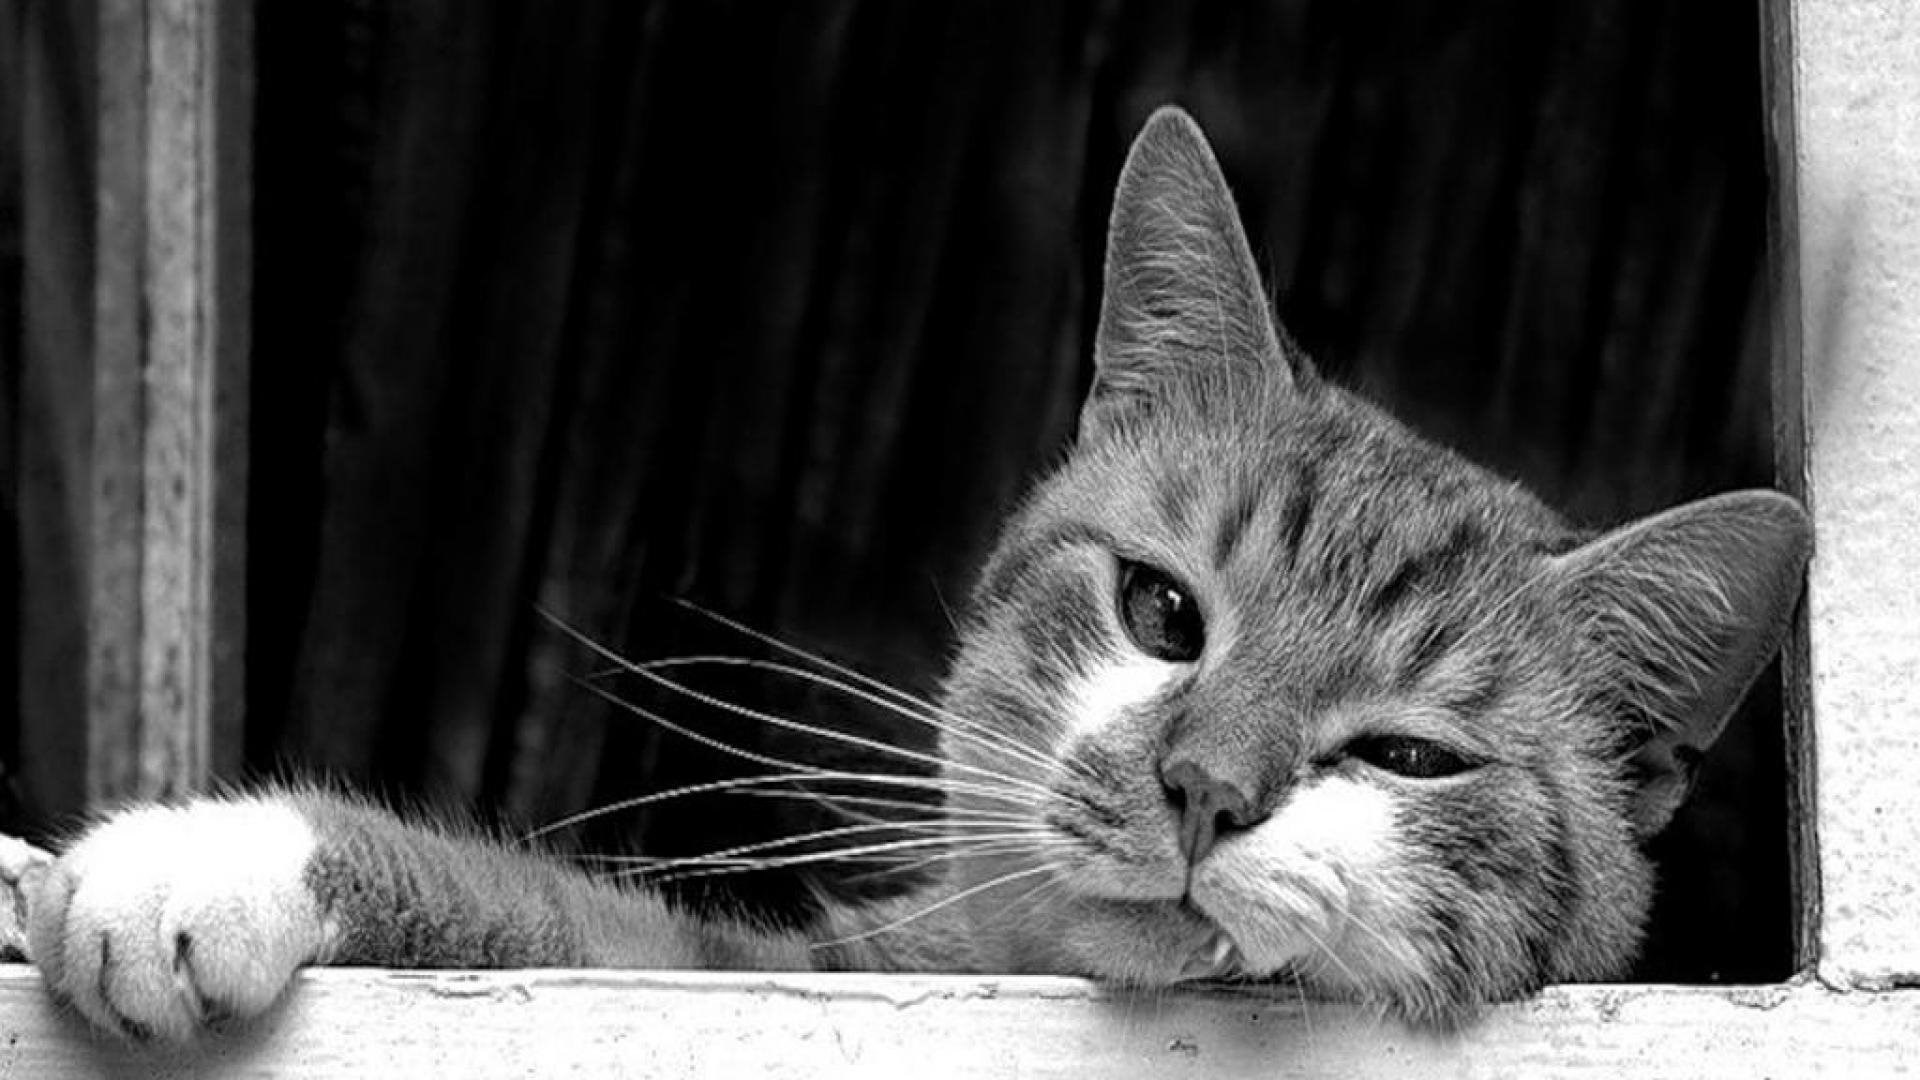 Free Download Black And White Cat Wallpaper 1920x1080 For Your